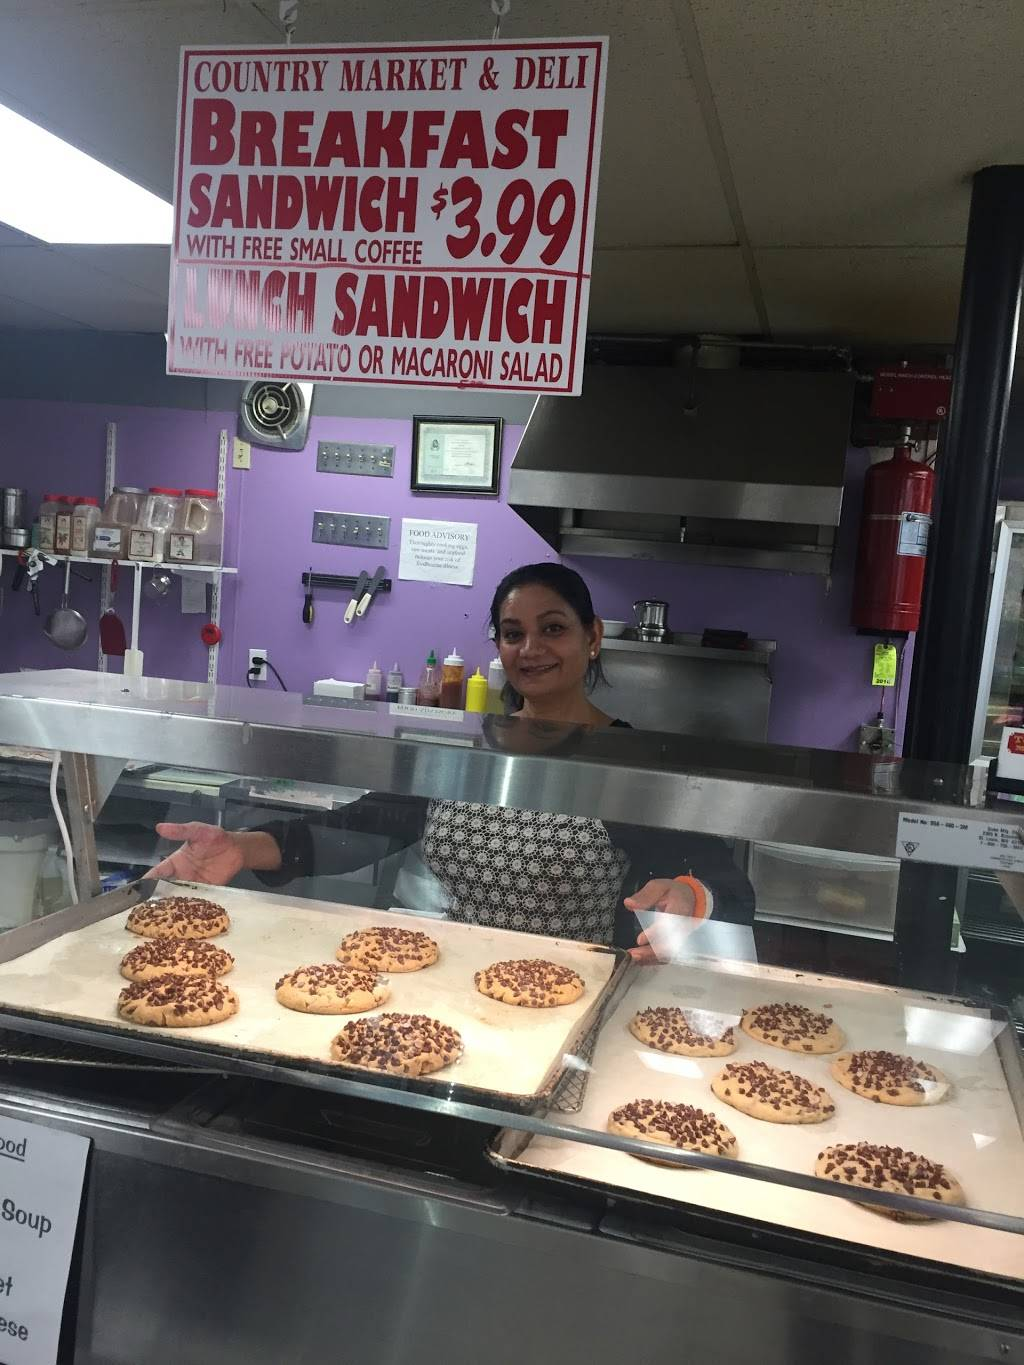 Town and Country Market & Deli | meal takeaway | 153 Glenwood Rd, Clinton, CT 06413, USA | 8606697243 OR +1 860-669-7243